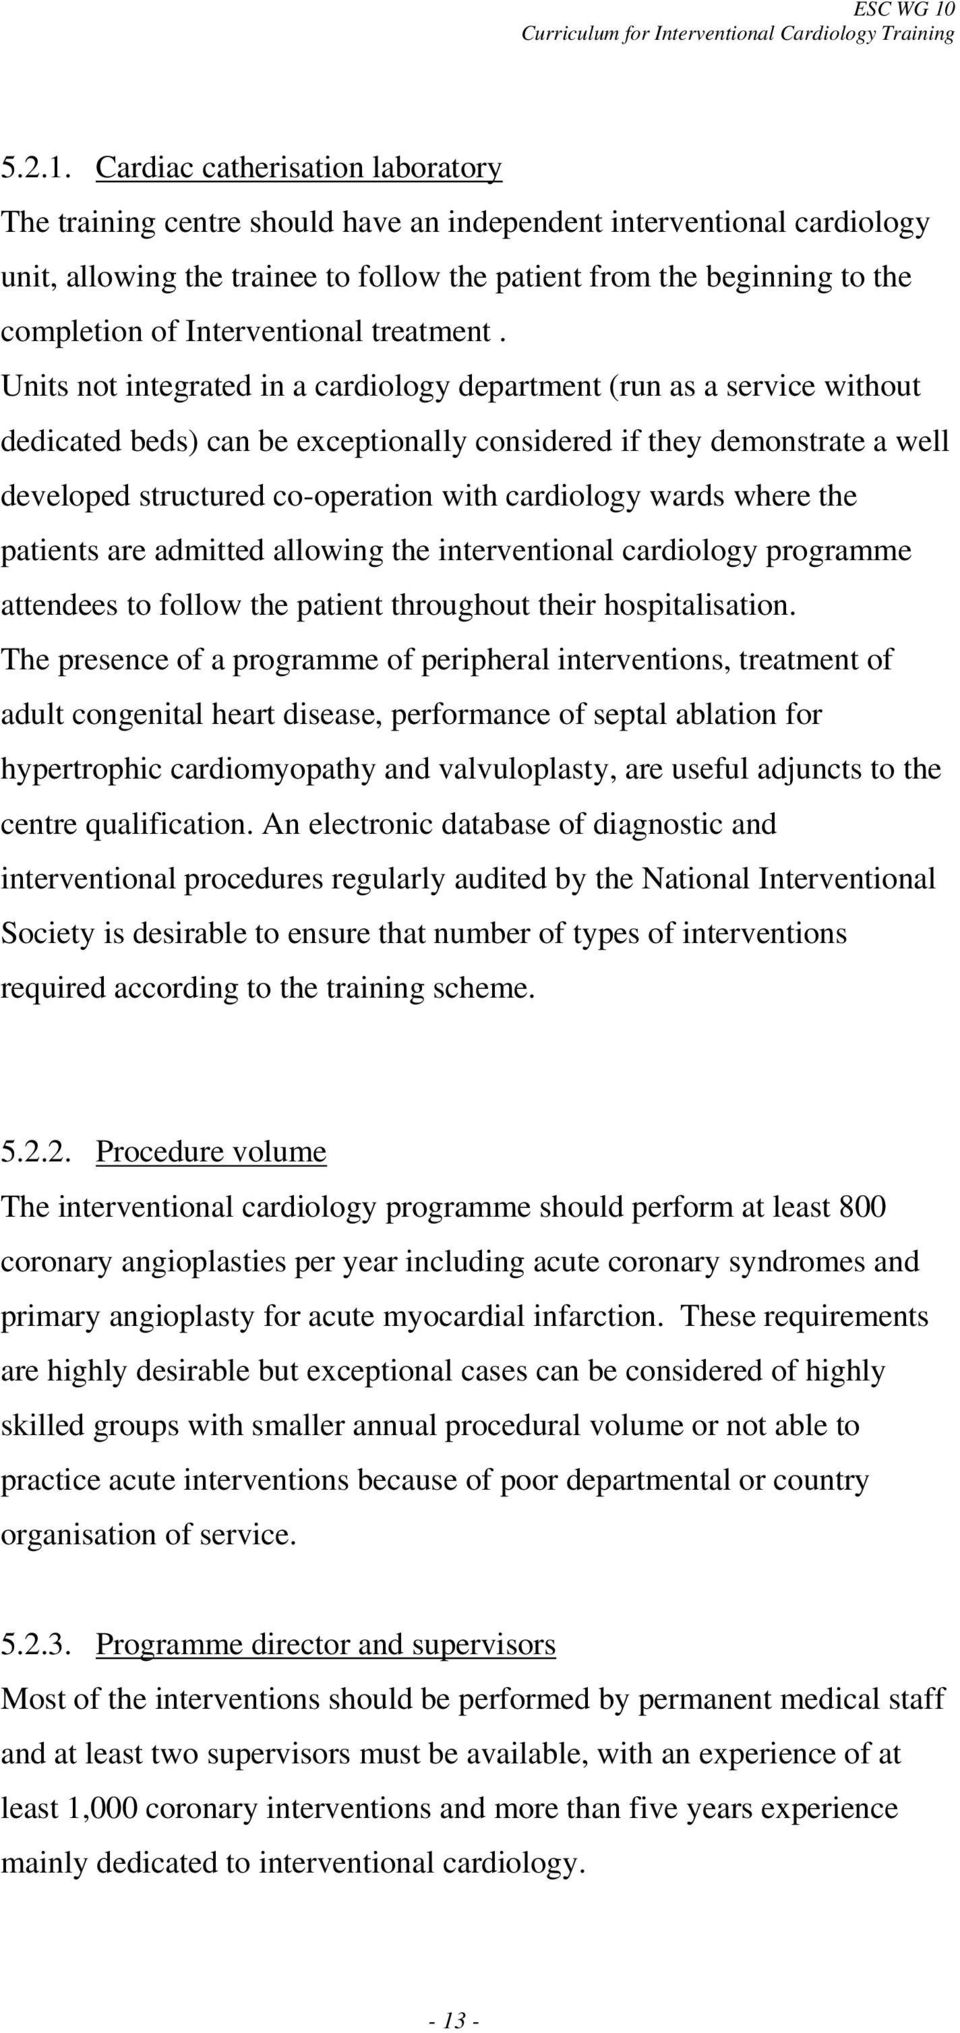 AND SYLLABUS FOR INTERVENTIONAL CARDIOLOGY SUBSPECIALITY